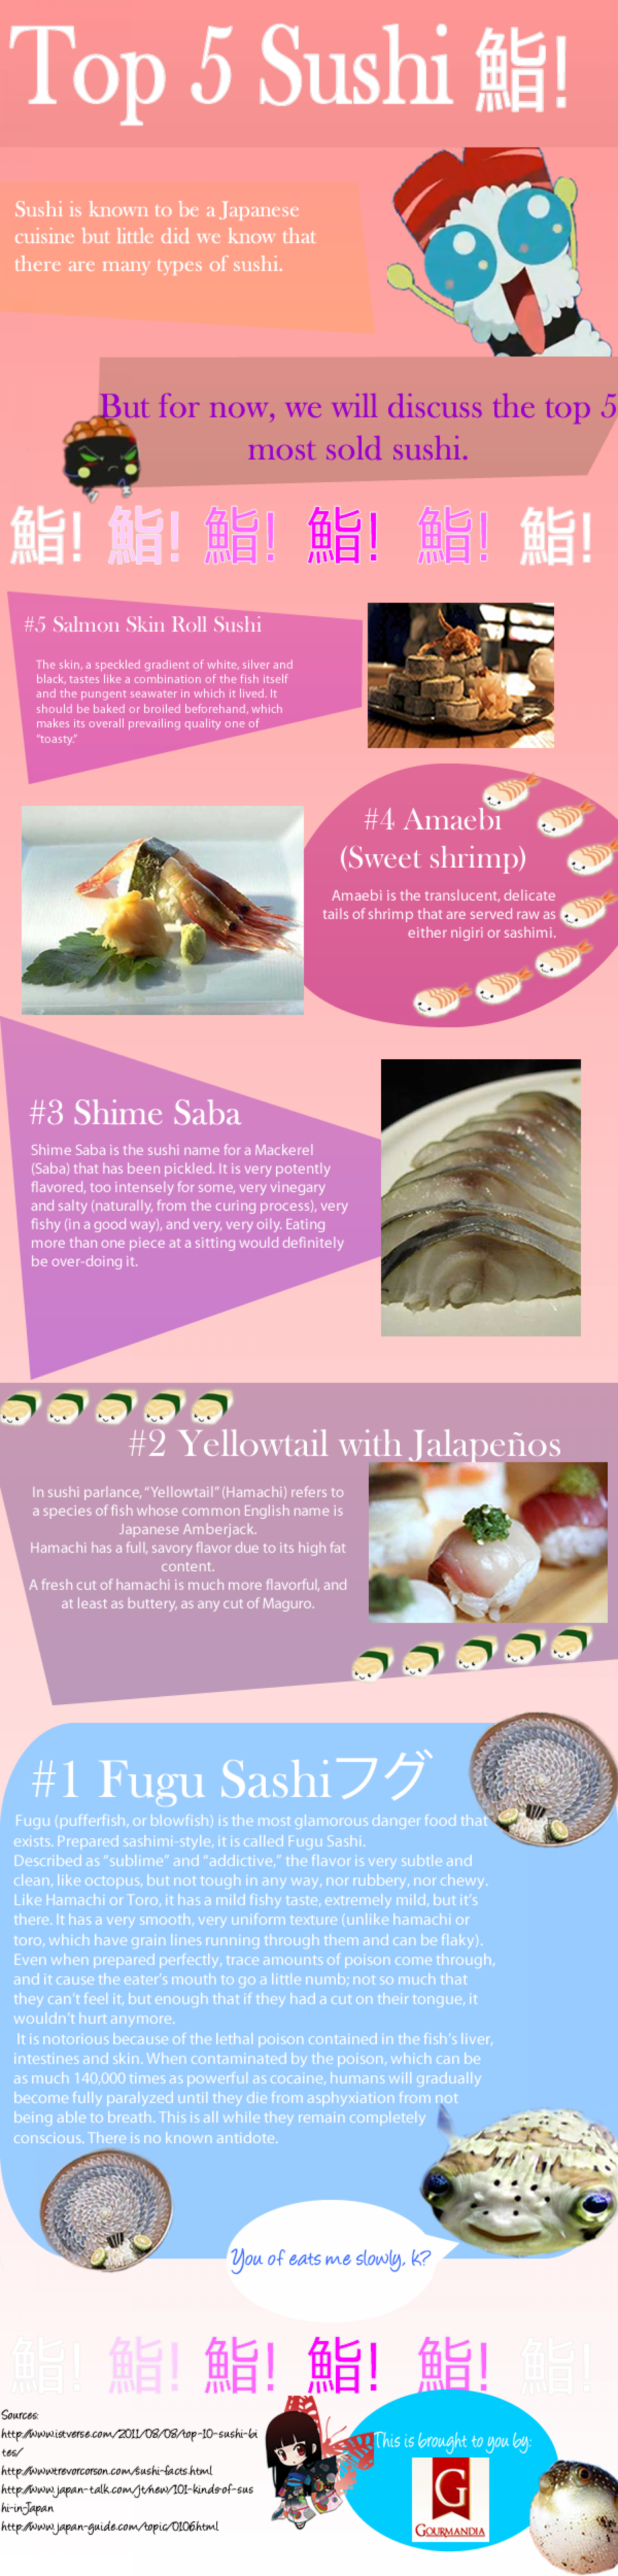 Top 5 Sushi Infographic